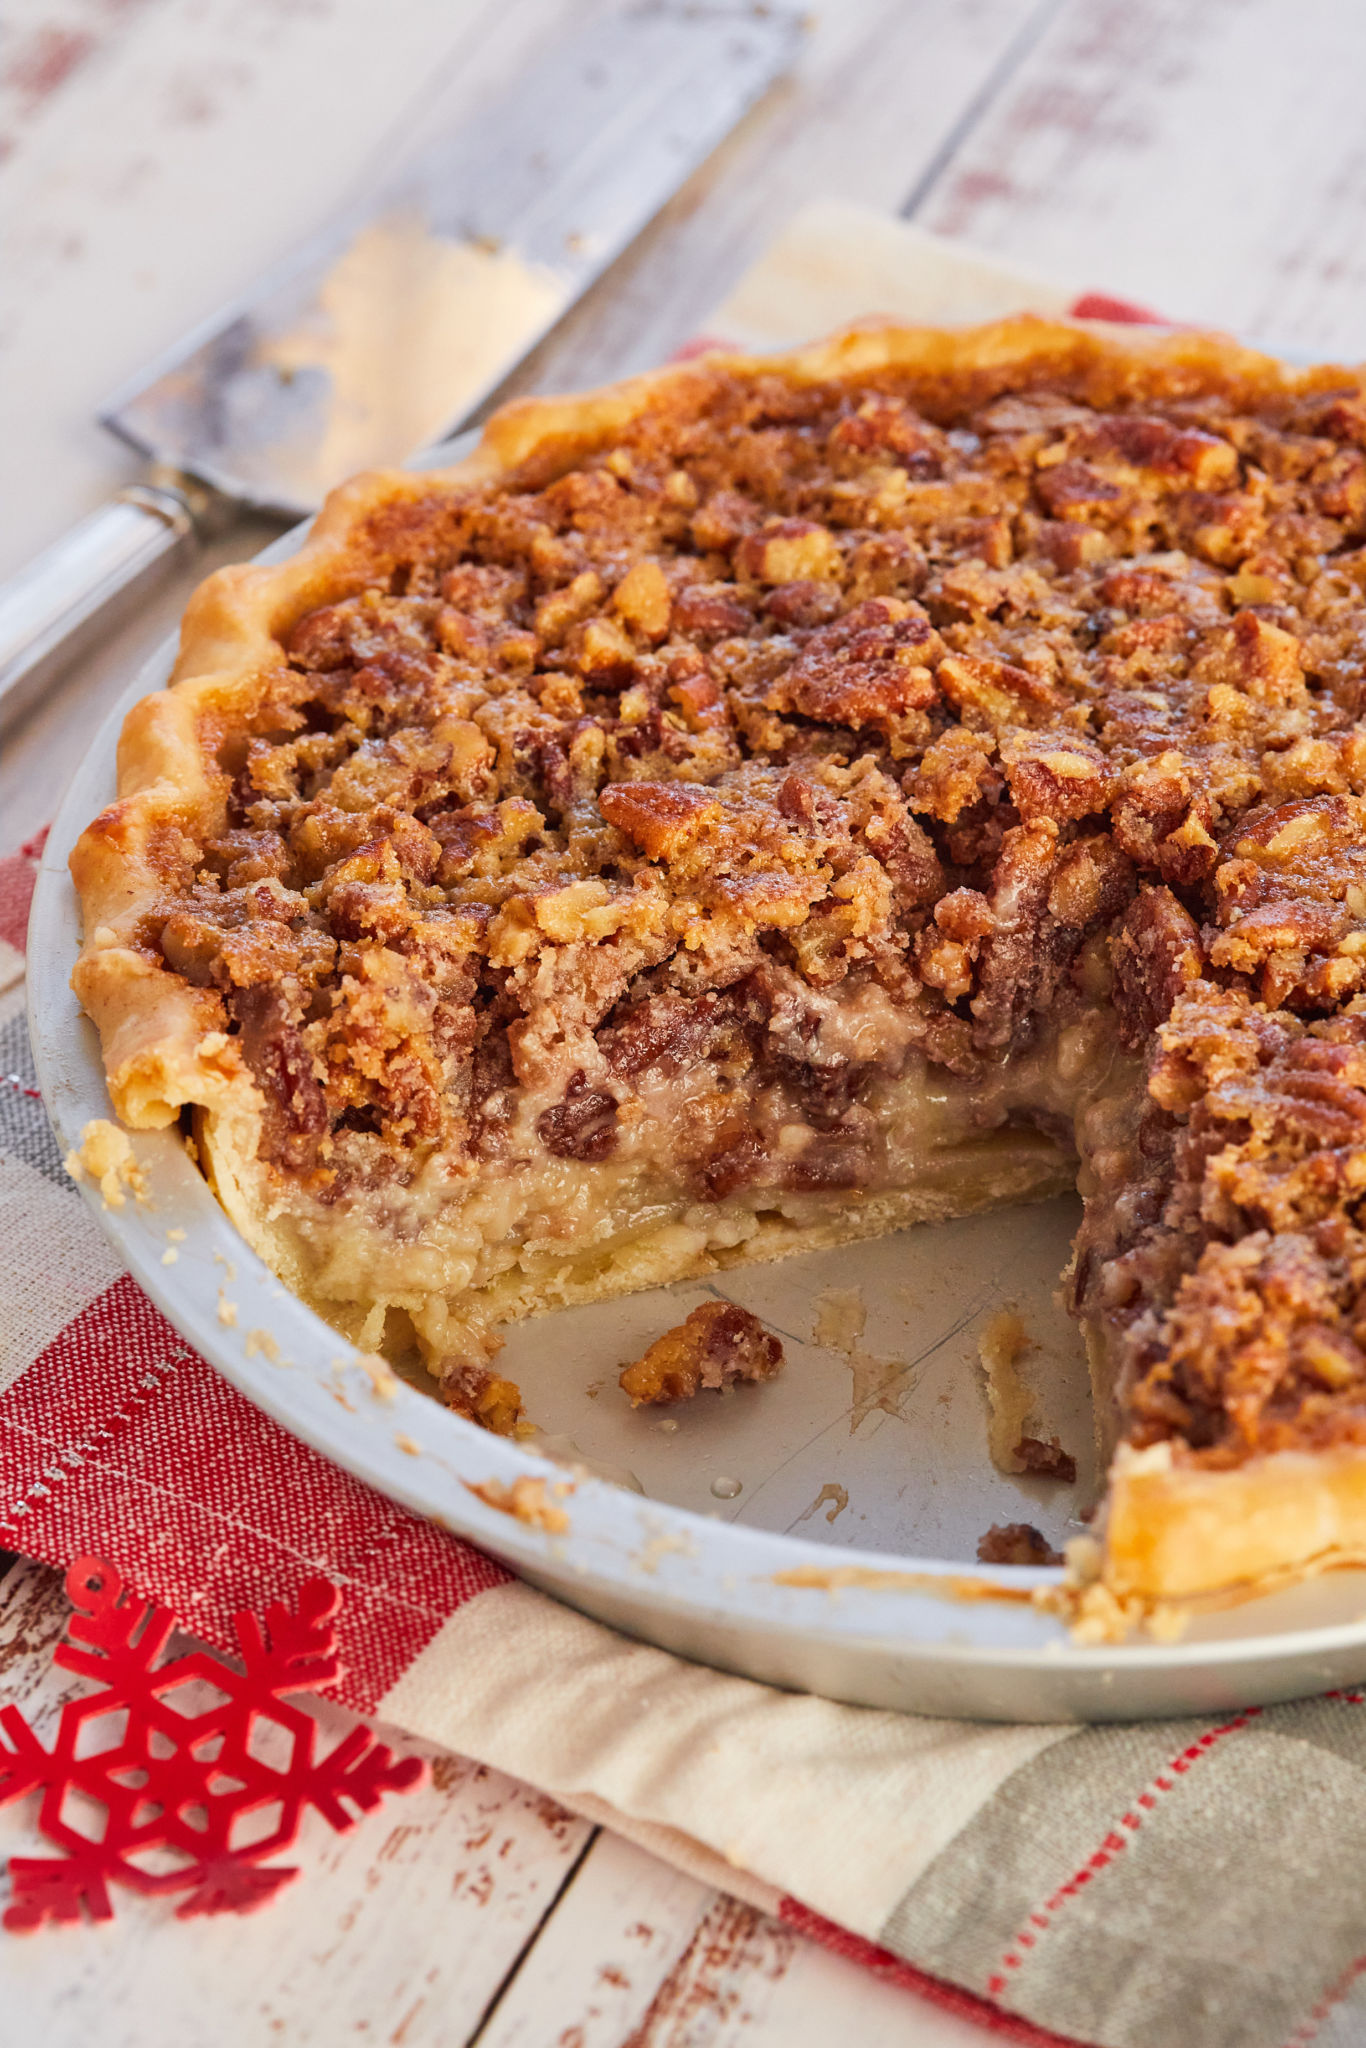 An American Buttermilk Pecan Pie with a slice cut out of it.